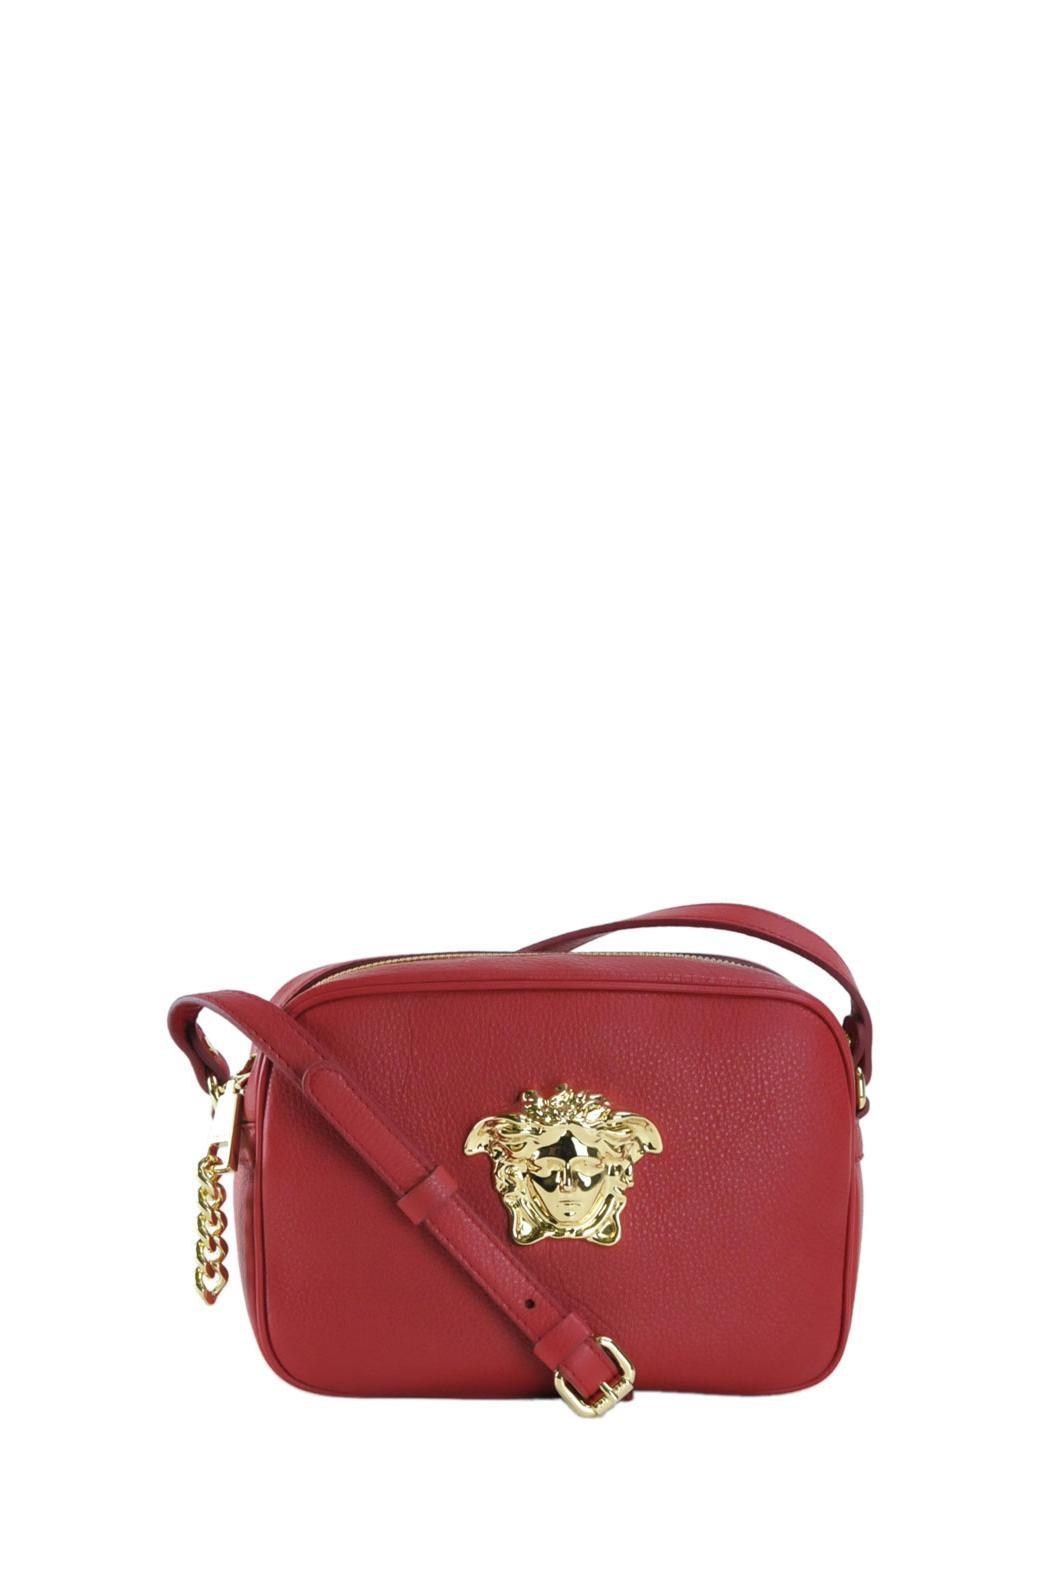 5321f25ffa17 Versace Palazzo Crossbody Bag from Atlantic City by Eleganza ...